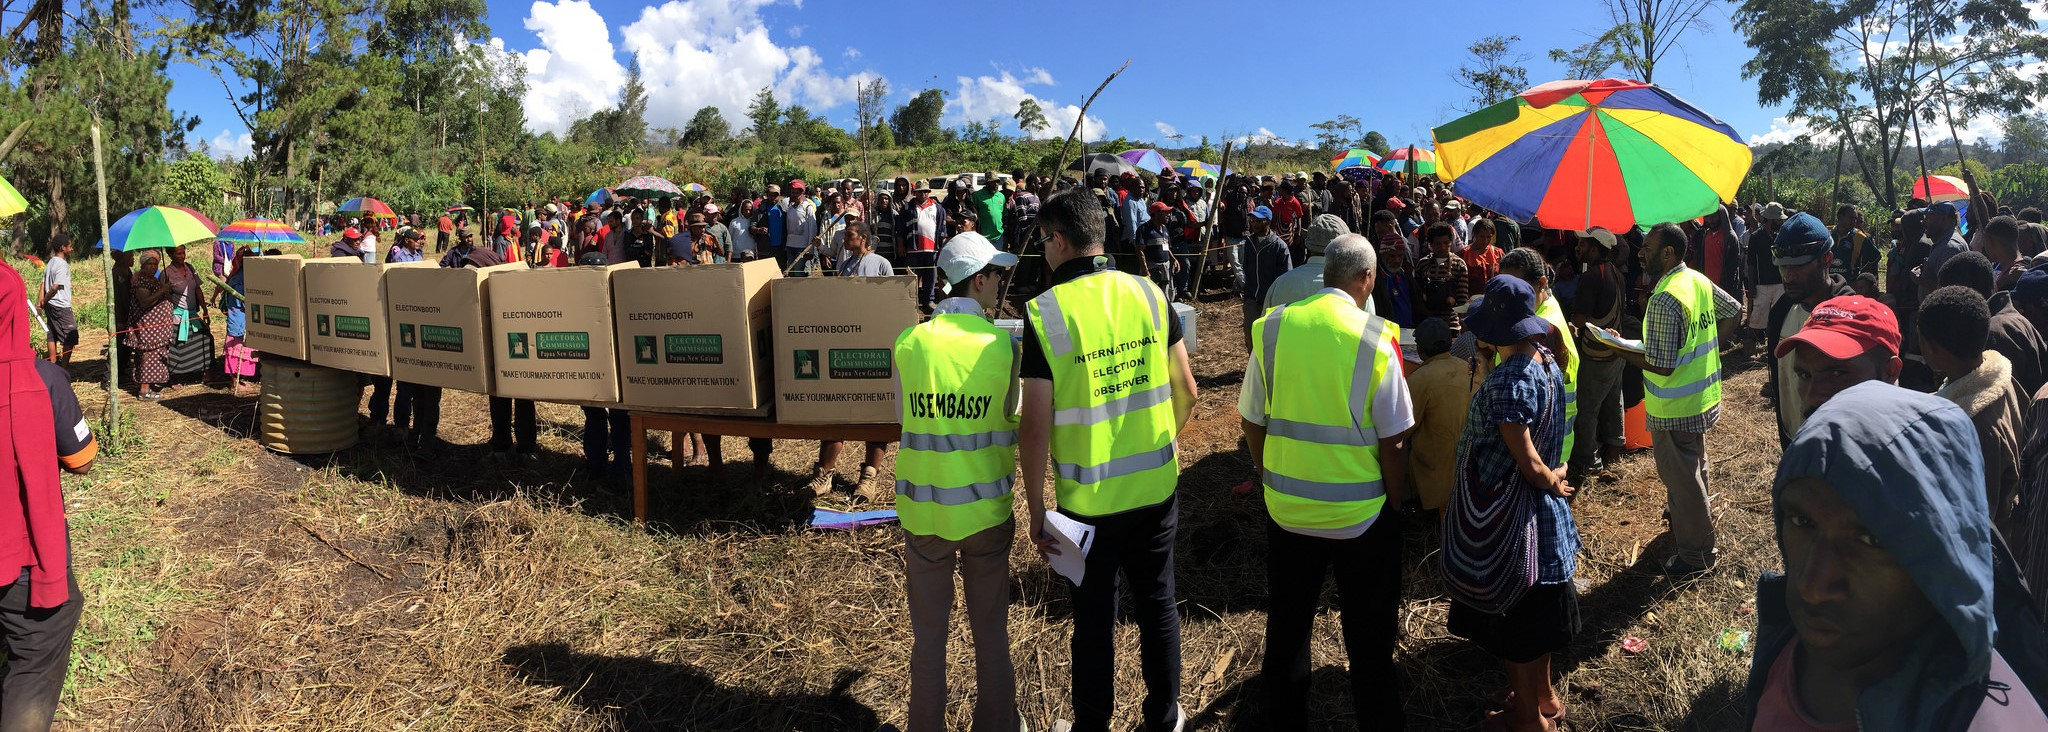 Observers from the US Embassy and the British High Commission at Mount Hagen in PNG's Western Highlands during the 2017 National Elections (Photo: Flickr/UNDP PNG)